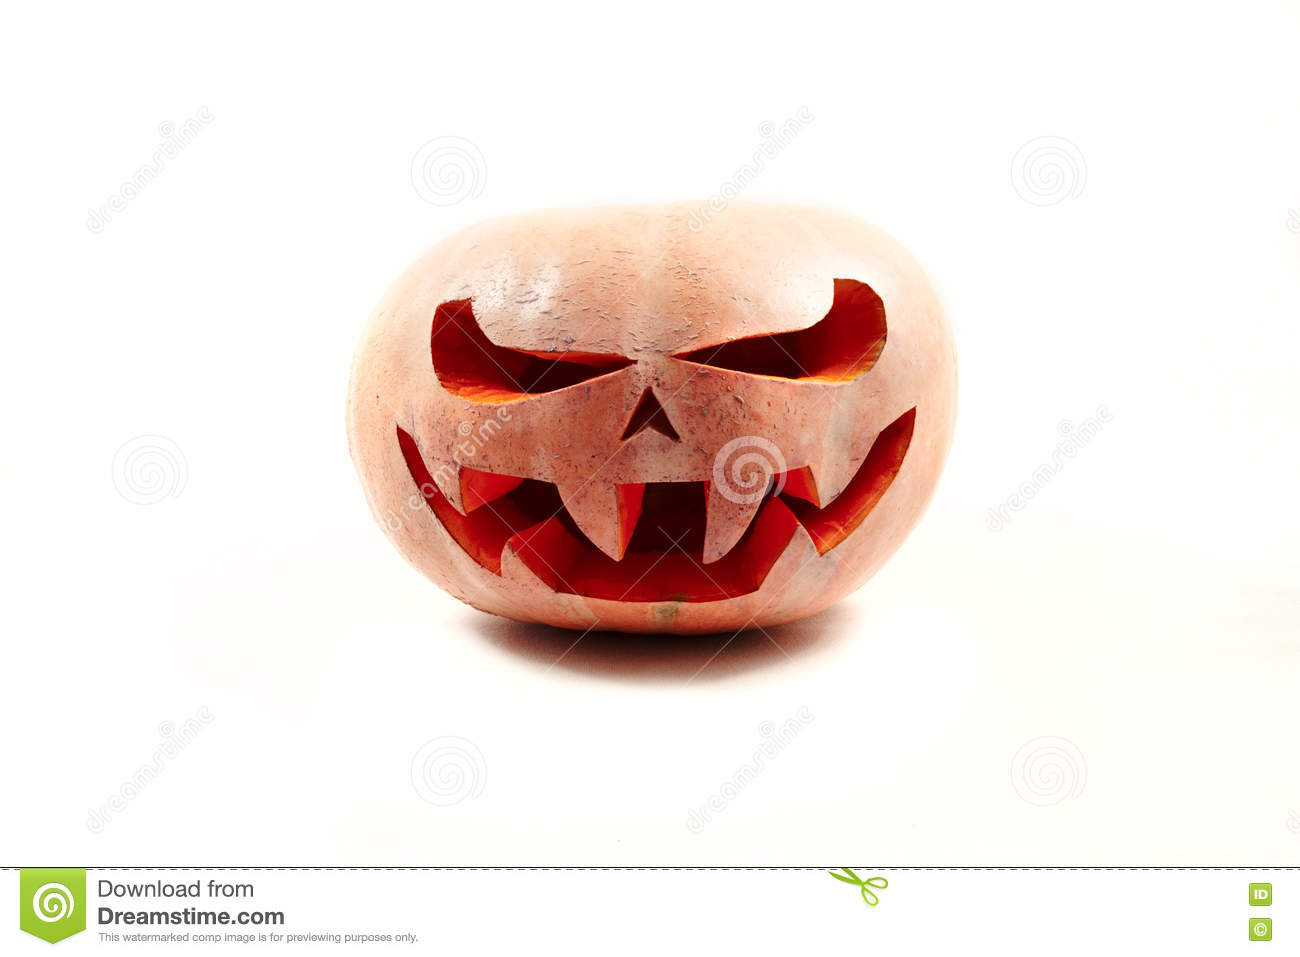 Very scary Halloween pumpkin on a white isolated background with